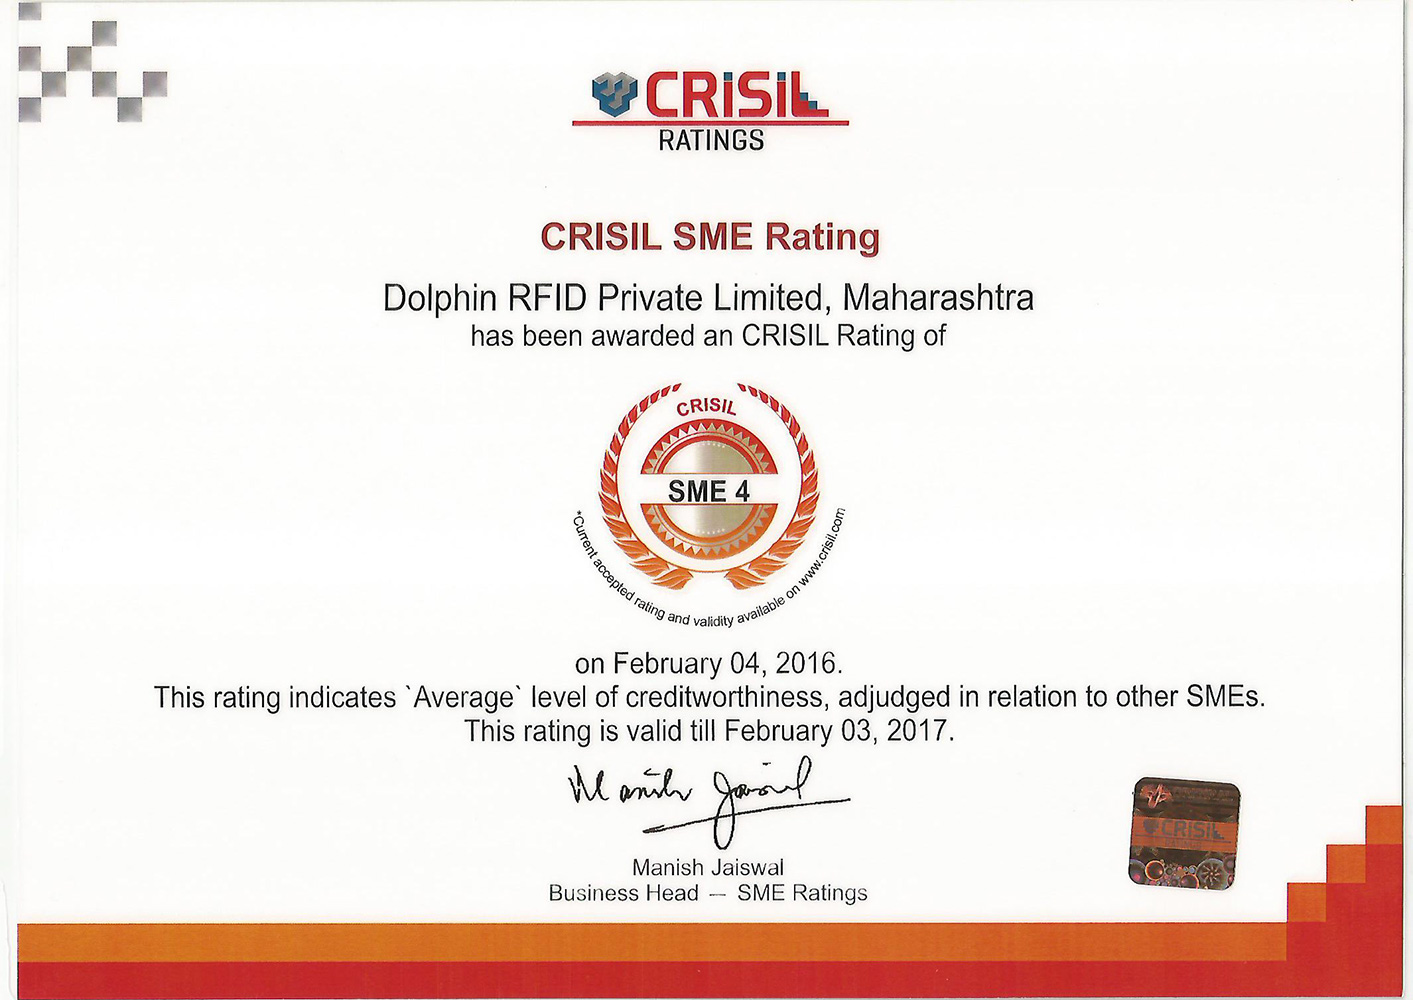 crisil-sme-rating-certification